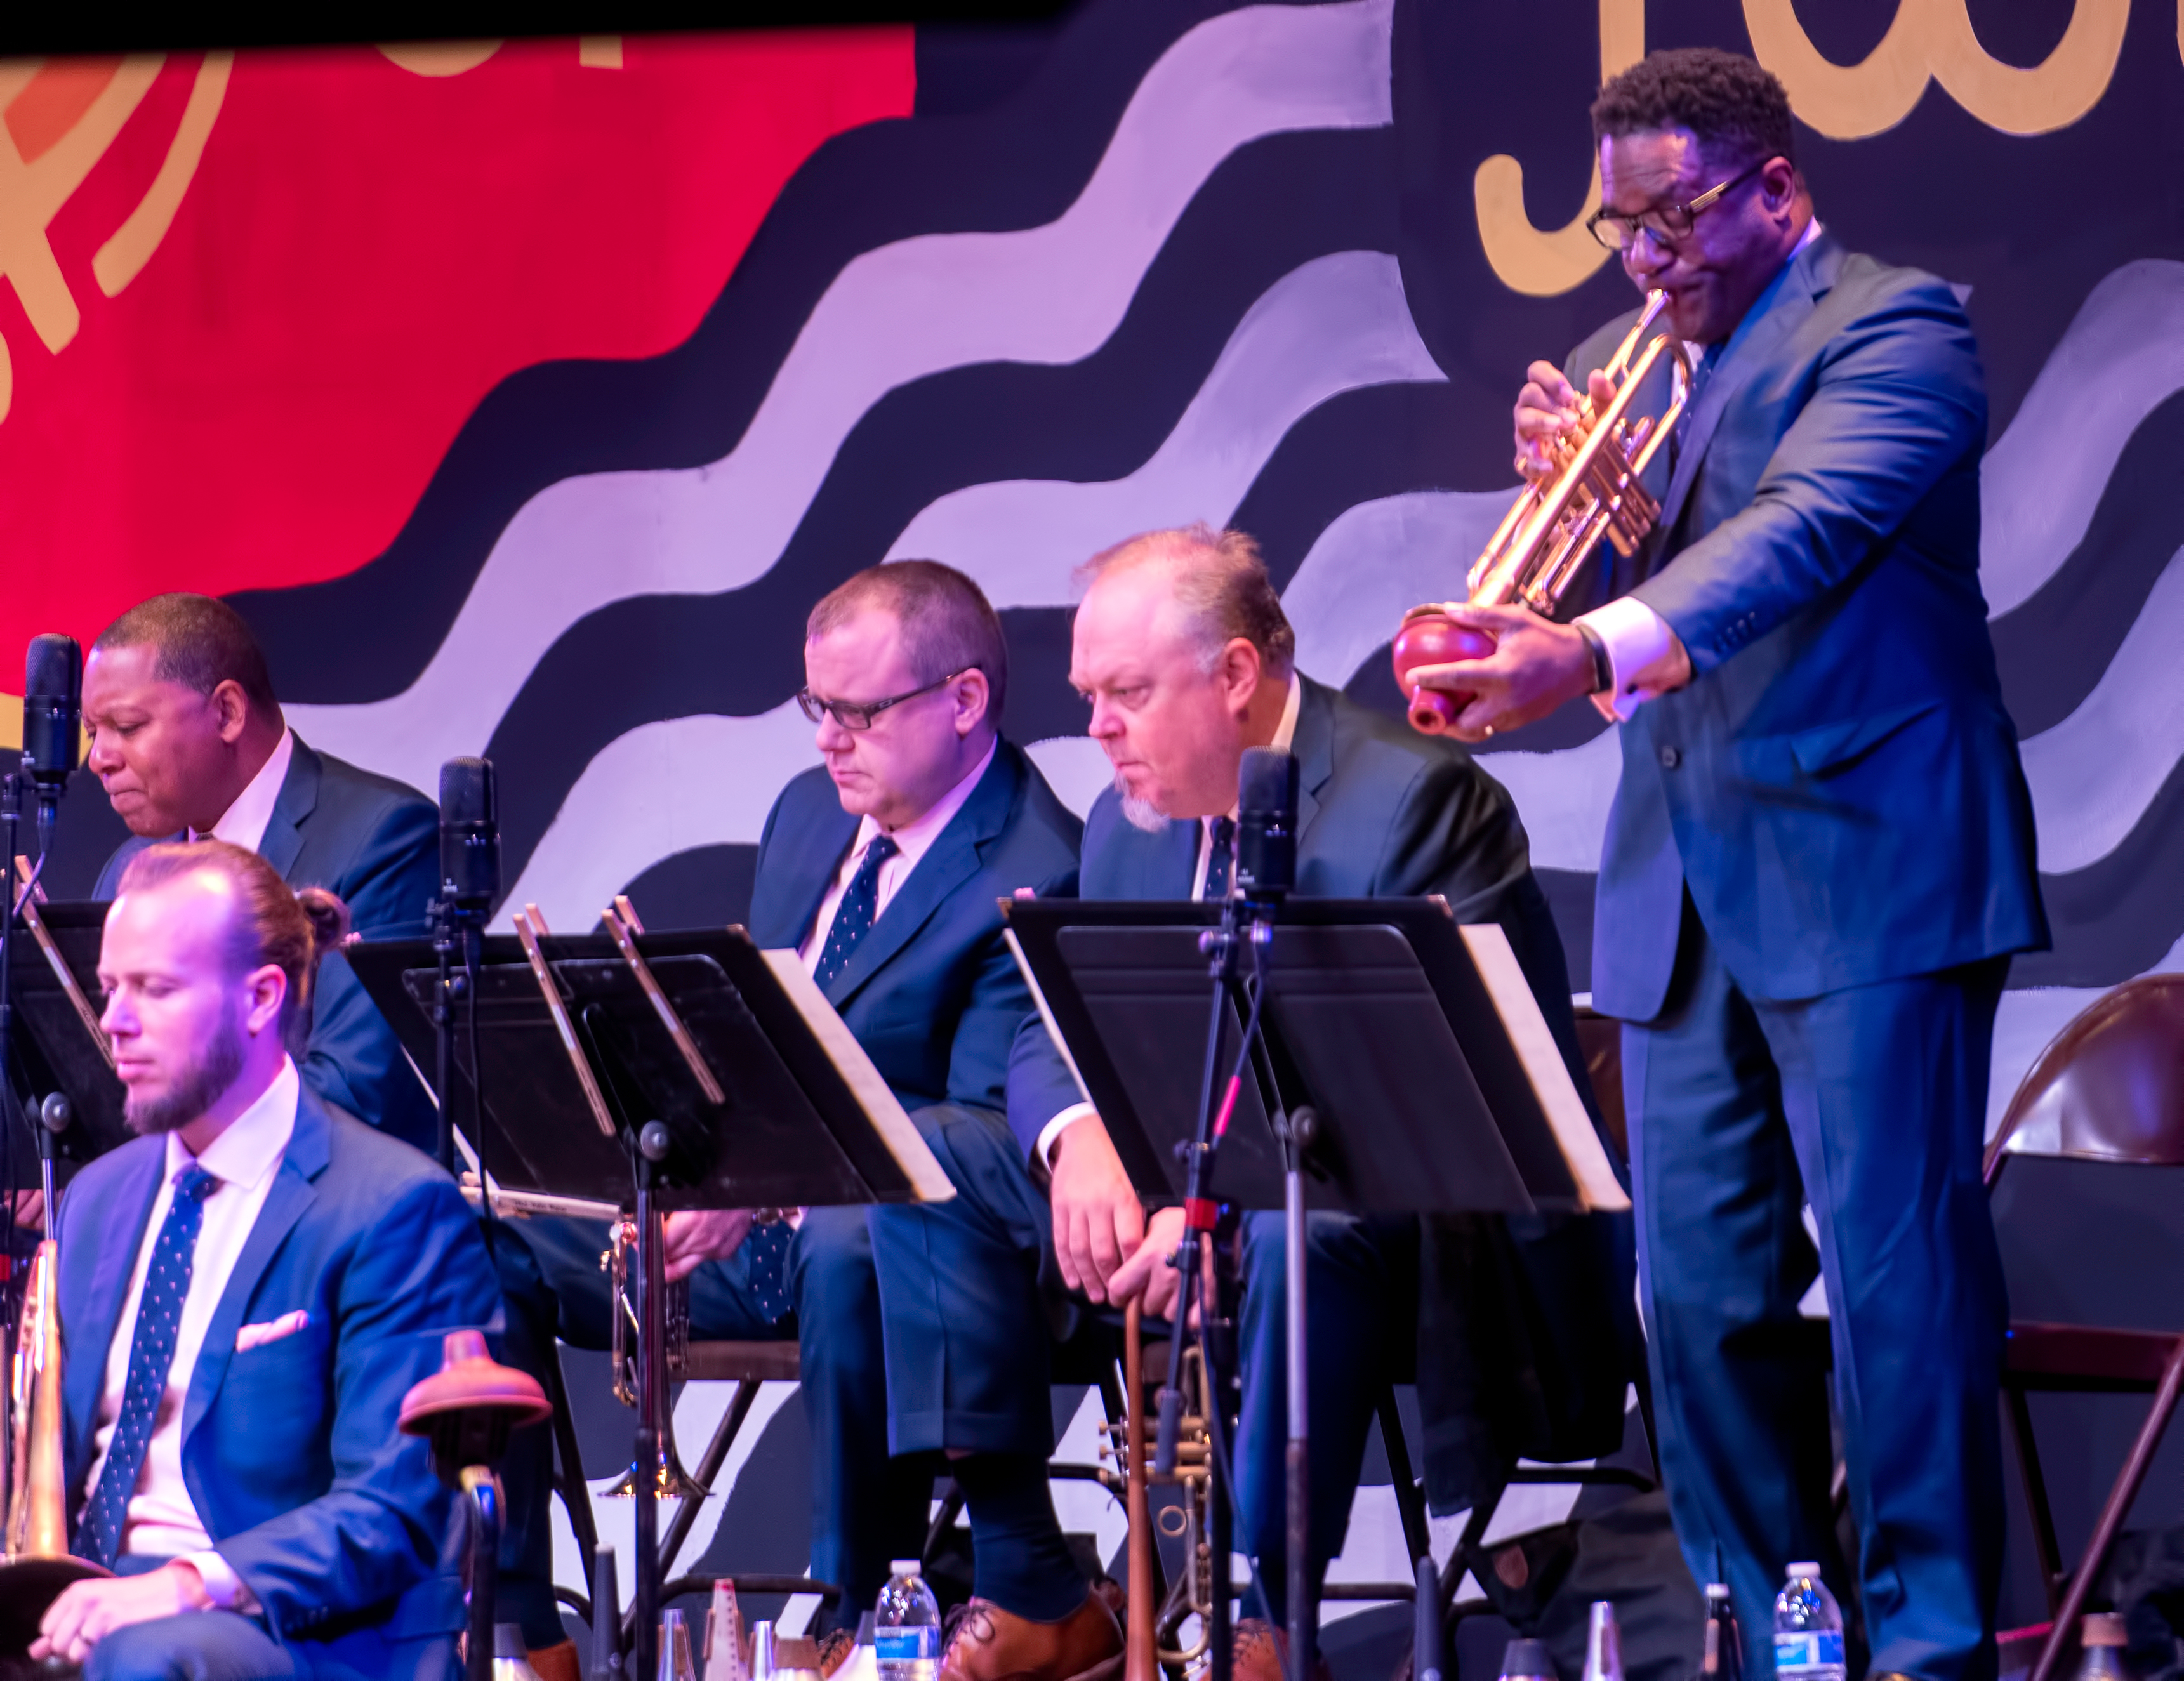 Marcus Printup with the Jazz at Lincoln Center Orchestra at the Monterey Jazz Festival 2018